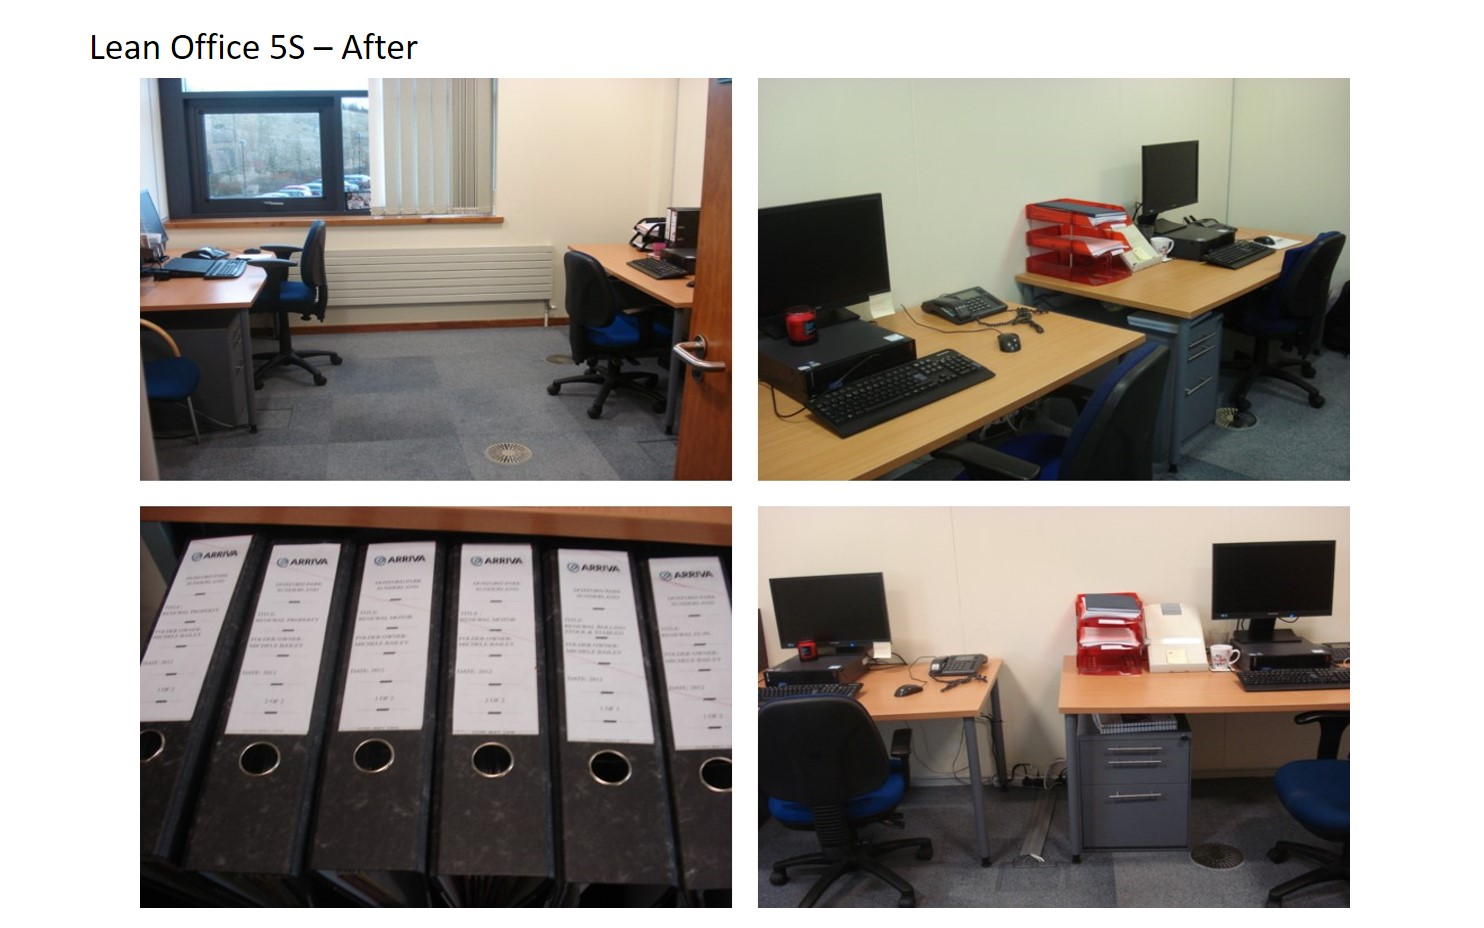 Lean Office 5S - After 2